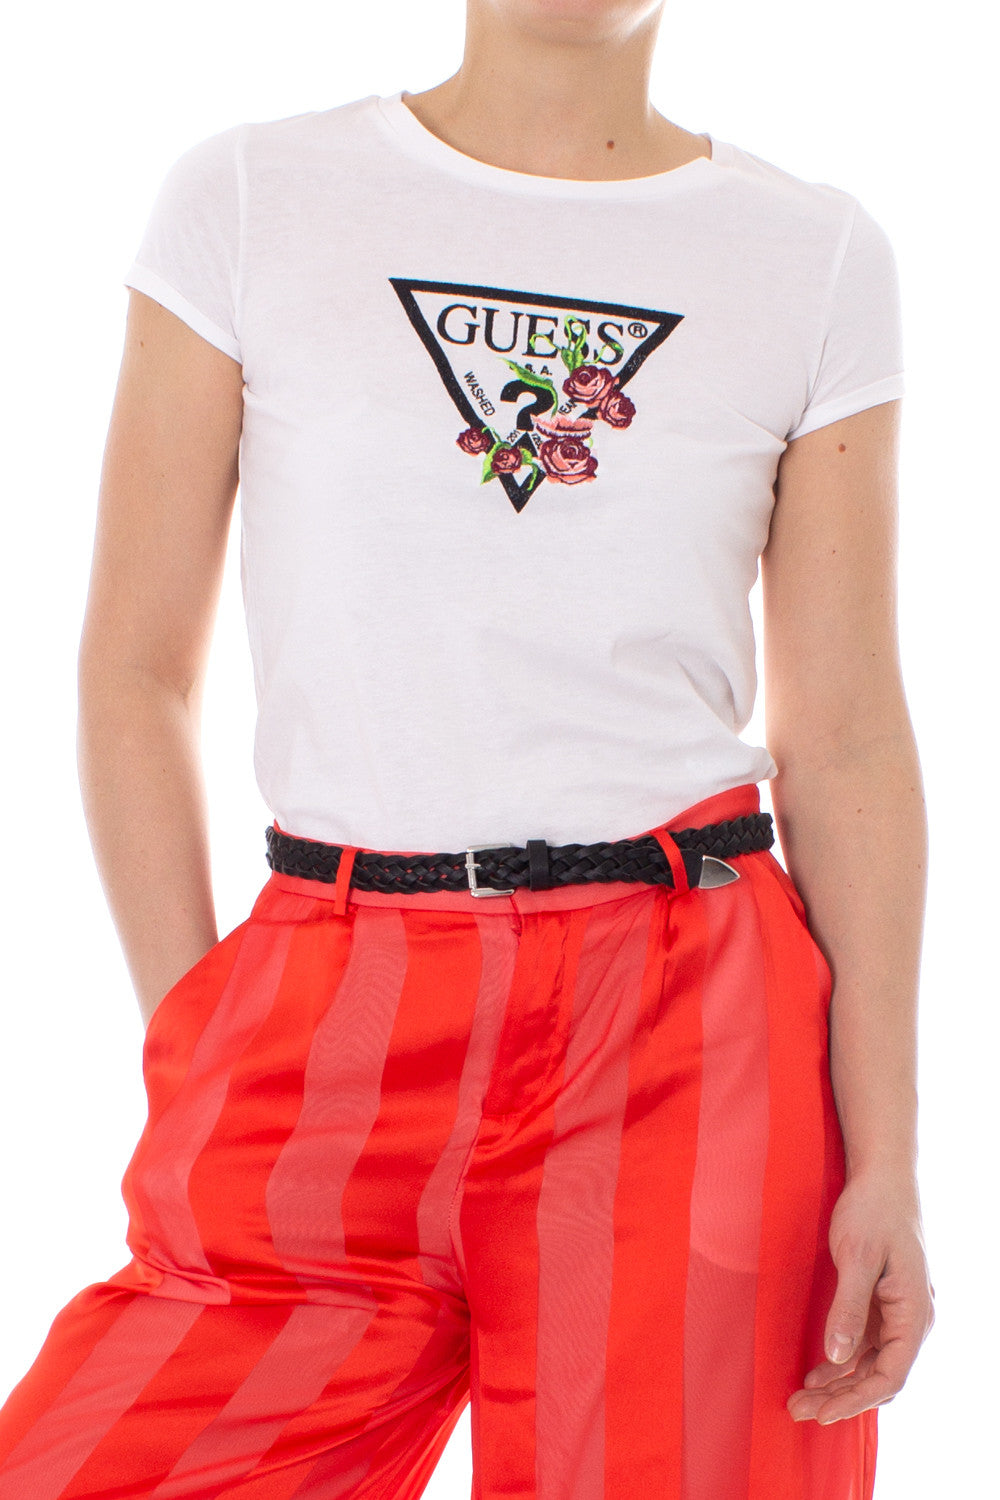 Guess Woman T-Shirt